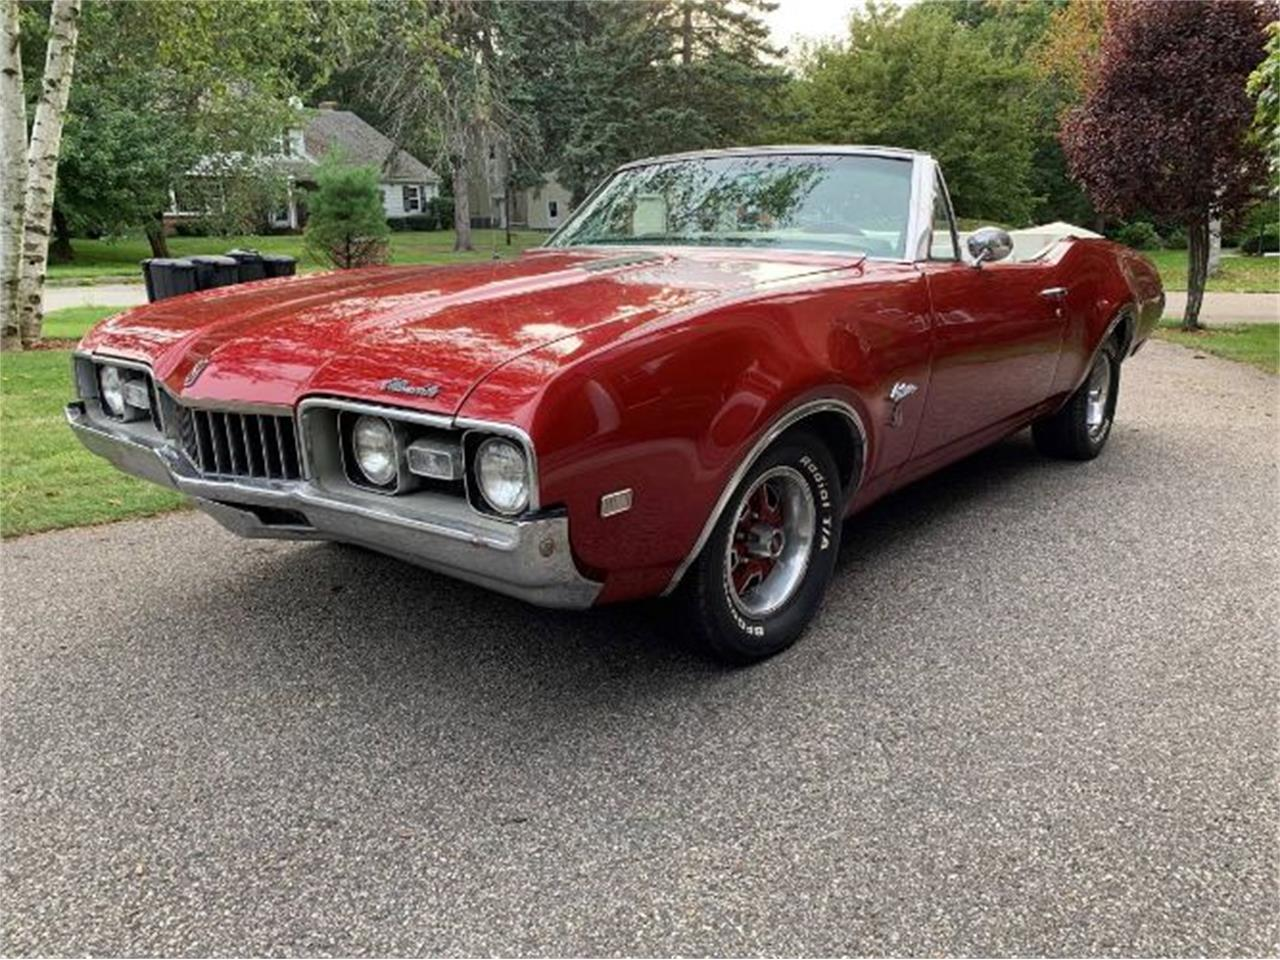 Large Picture of '68 Oldsmobile Cutlass - $23,895.00 Offered by Classic Car Deals - R0TI